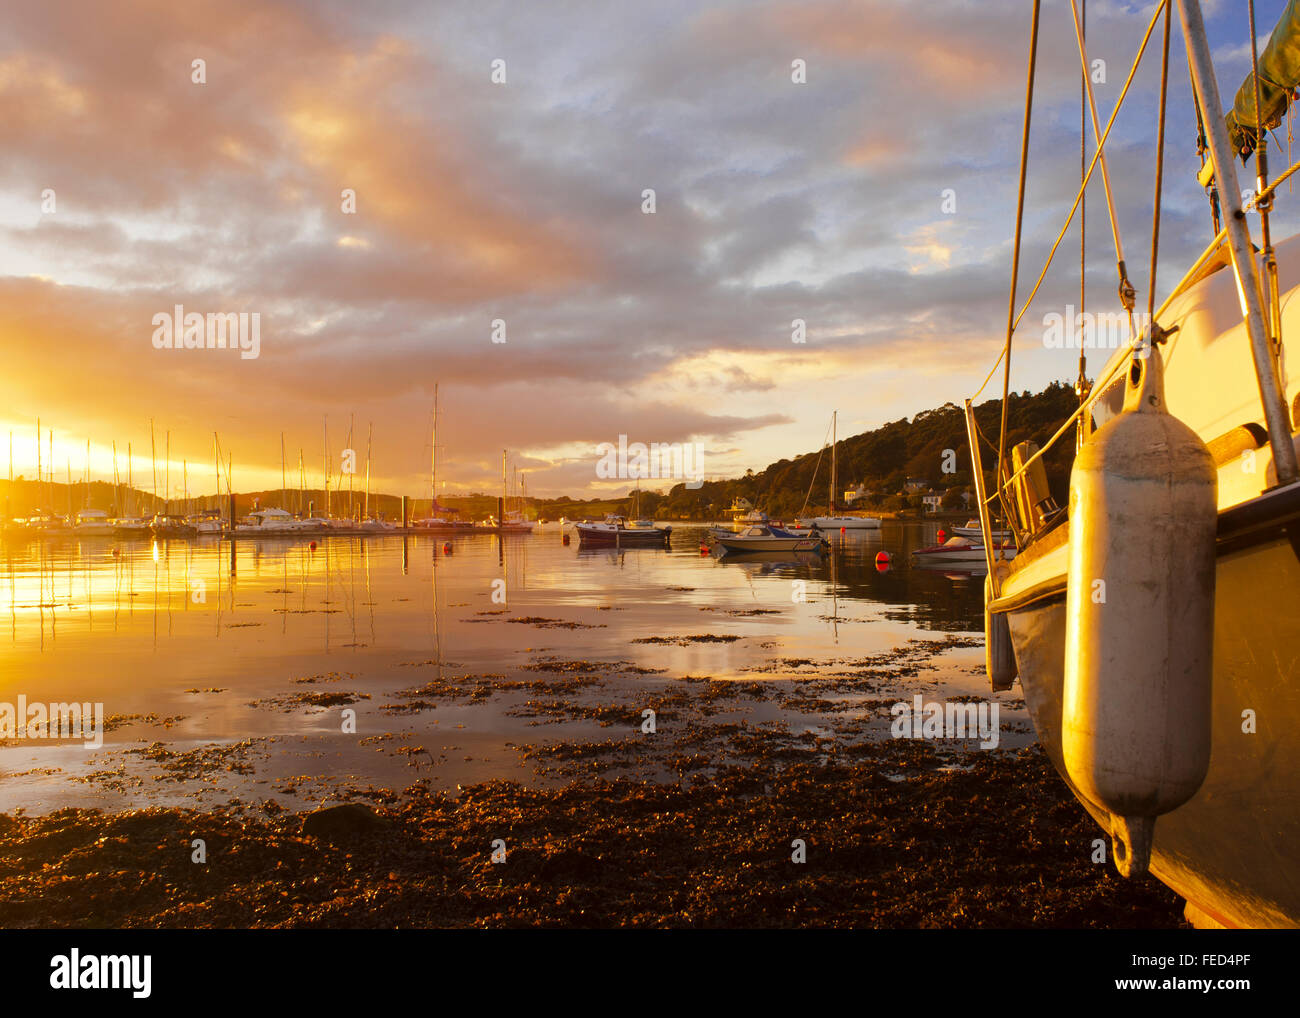 sunset-in-crosshaven-co-cork-ireland-with-copy-space-FED4PF.jpg